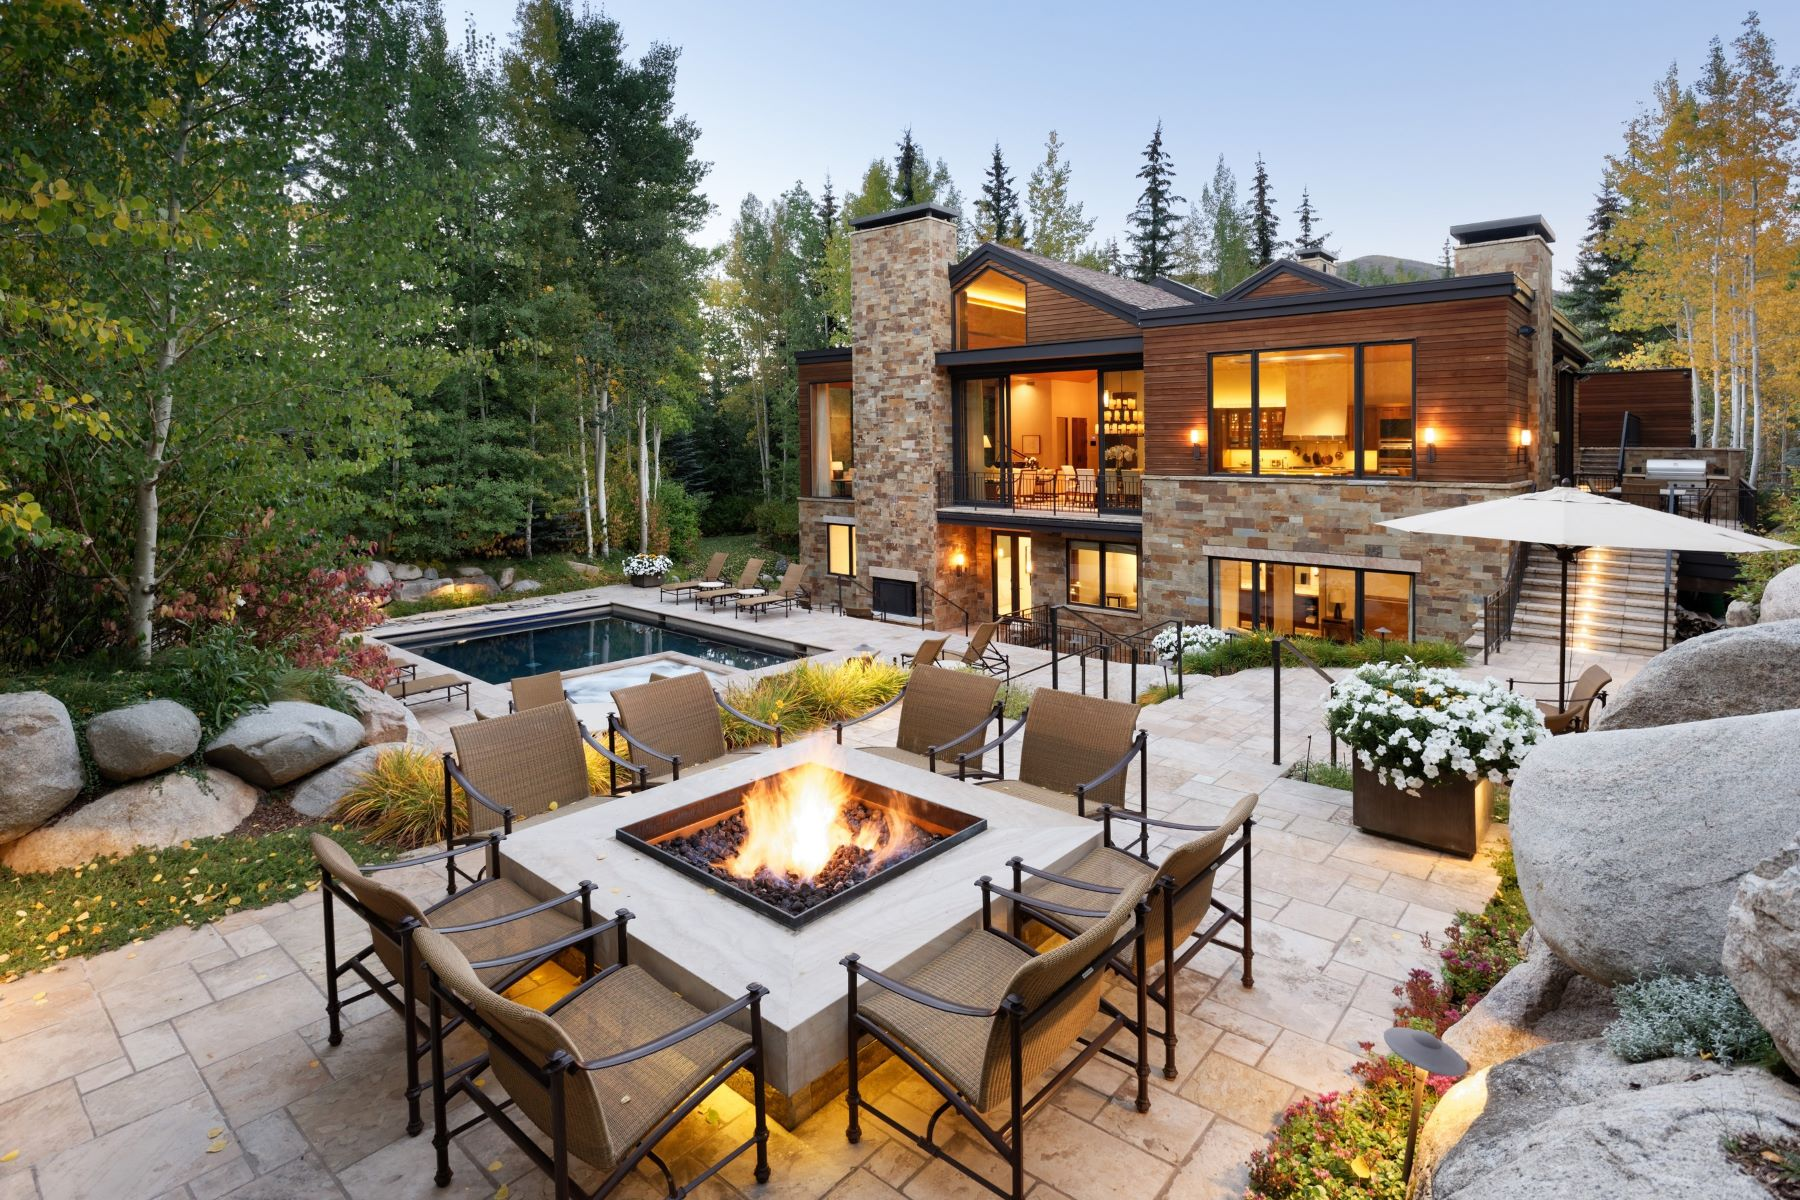 Single Family Homes for Sale at In-town Living at its Finest 8 Ute Place Aspen, Colorado 81611 United States